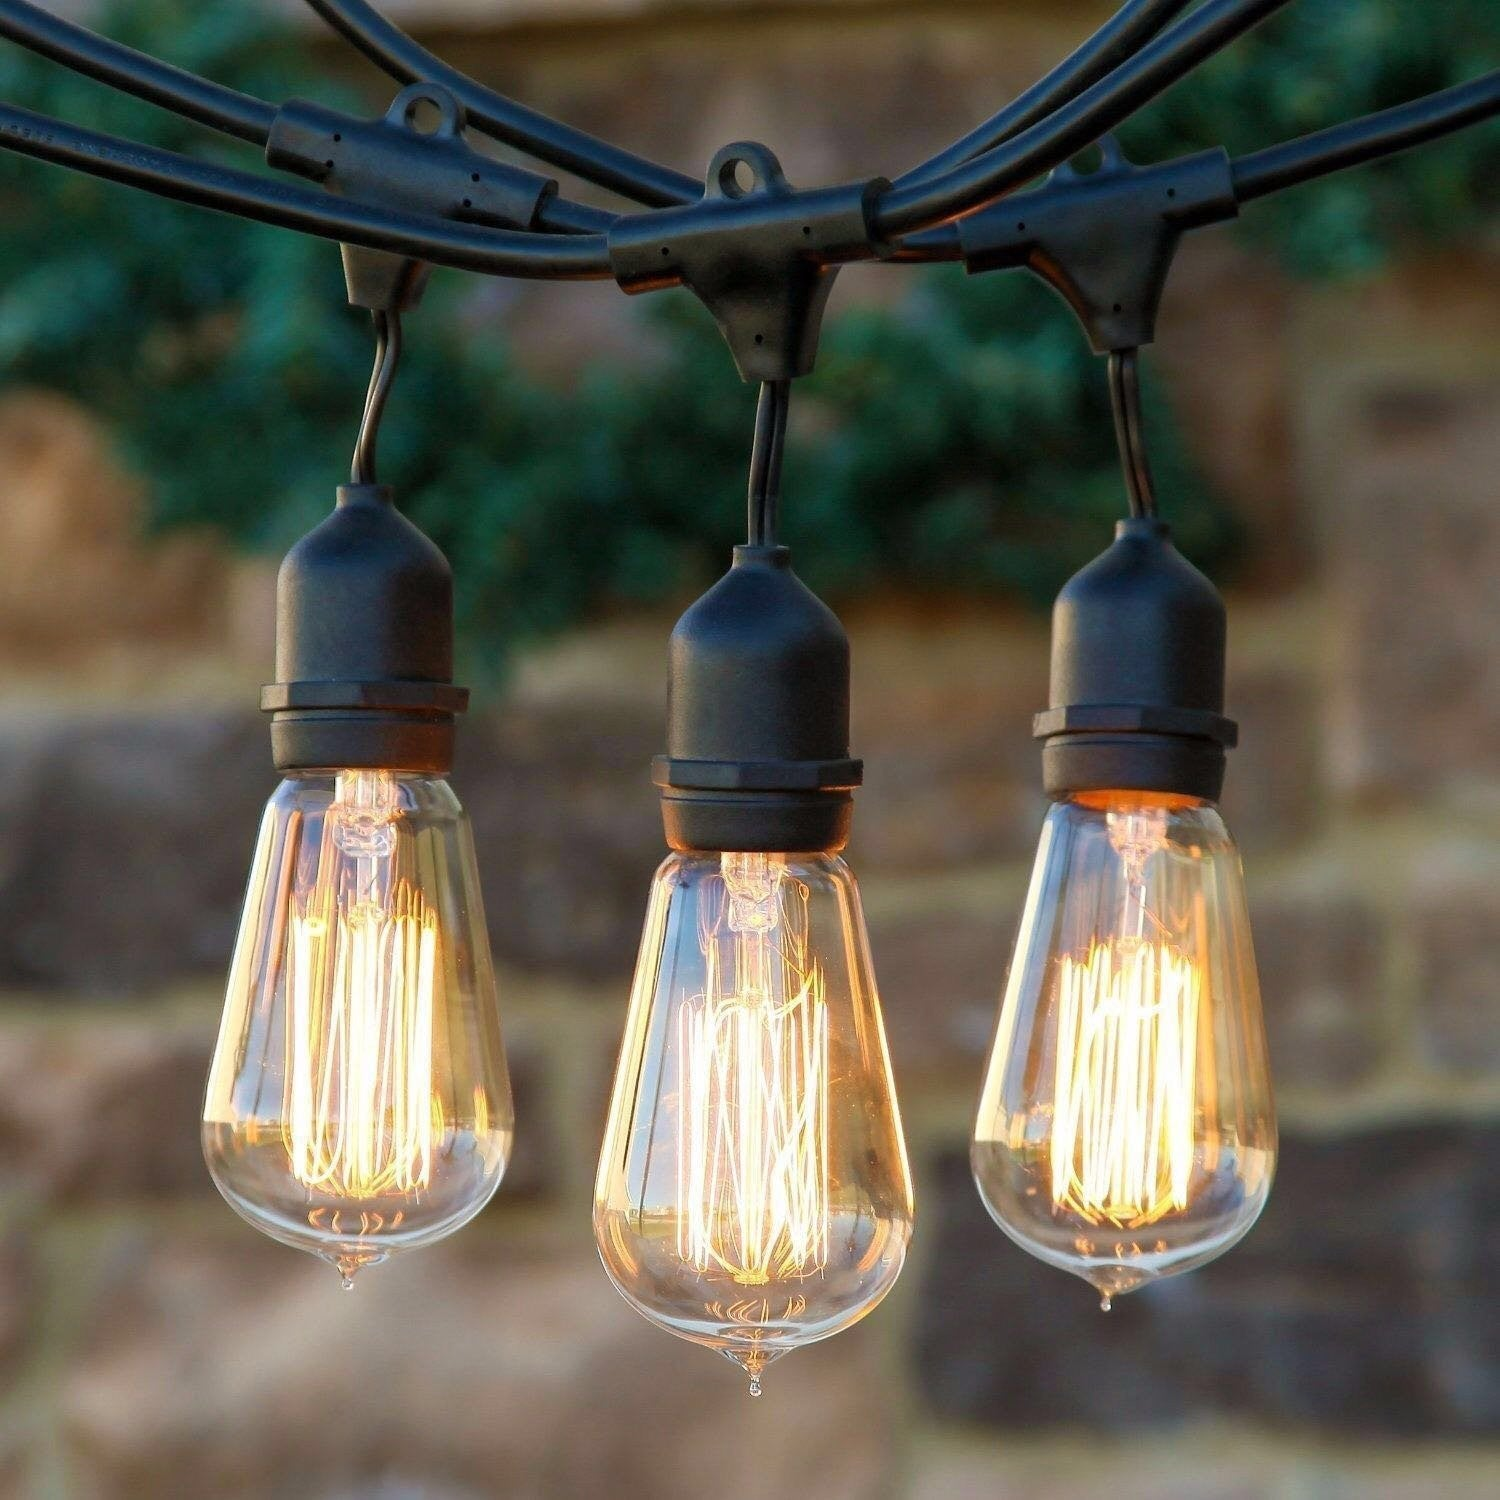 proxy lighting weatherproof outdoor string lights with vintage edison